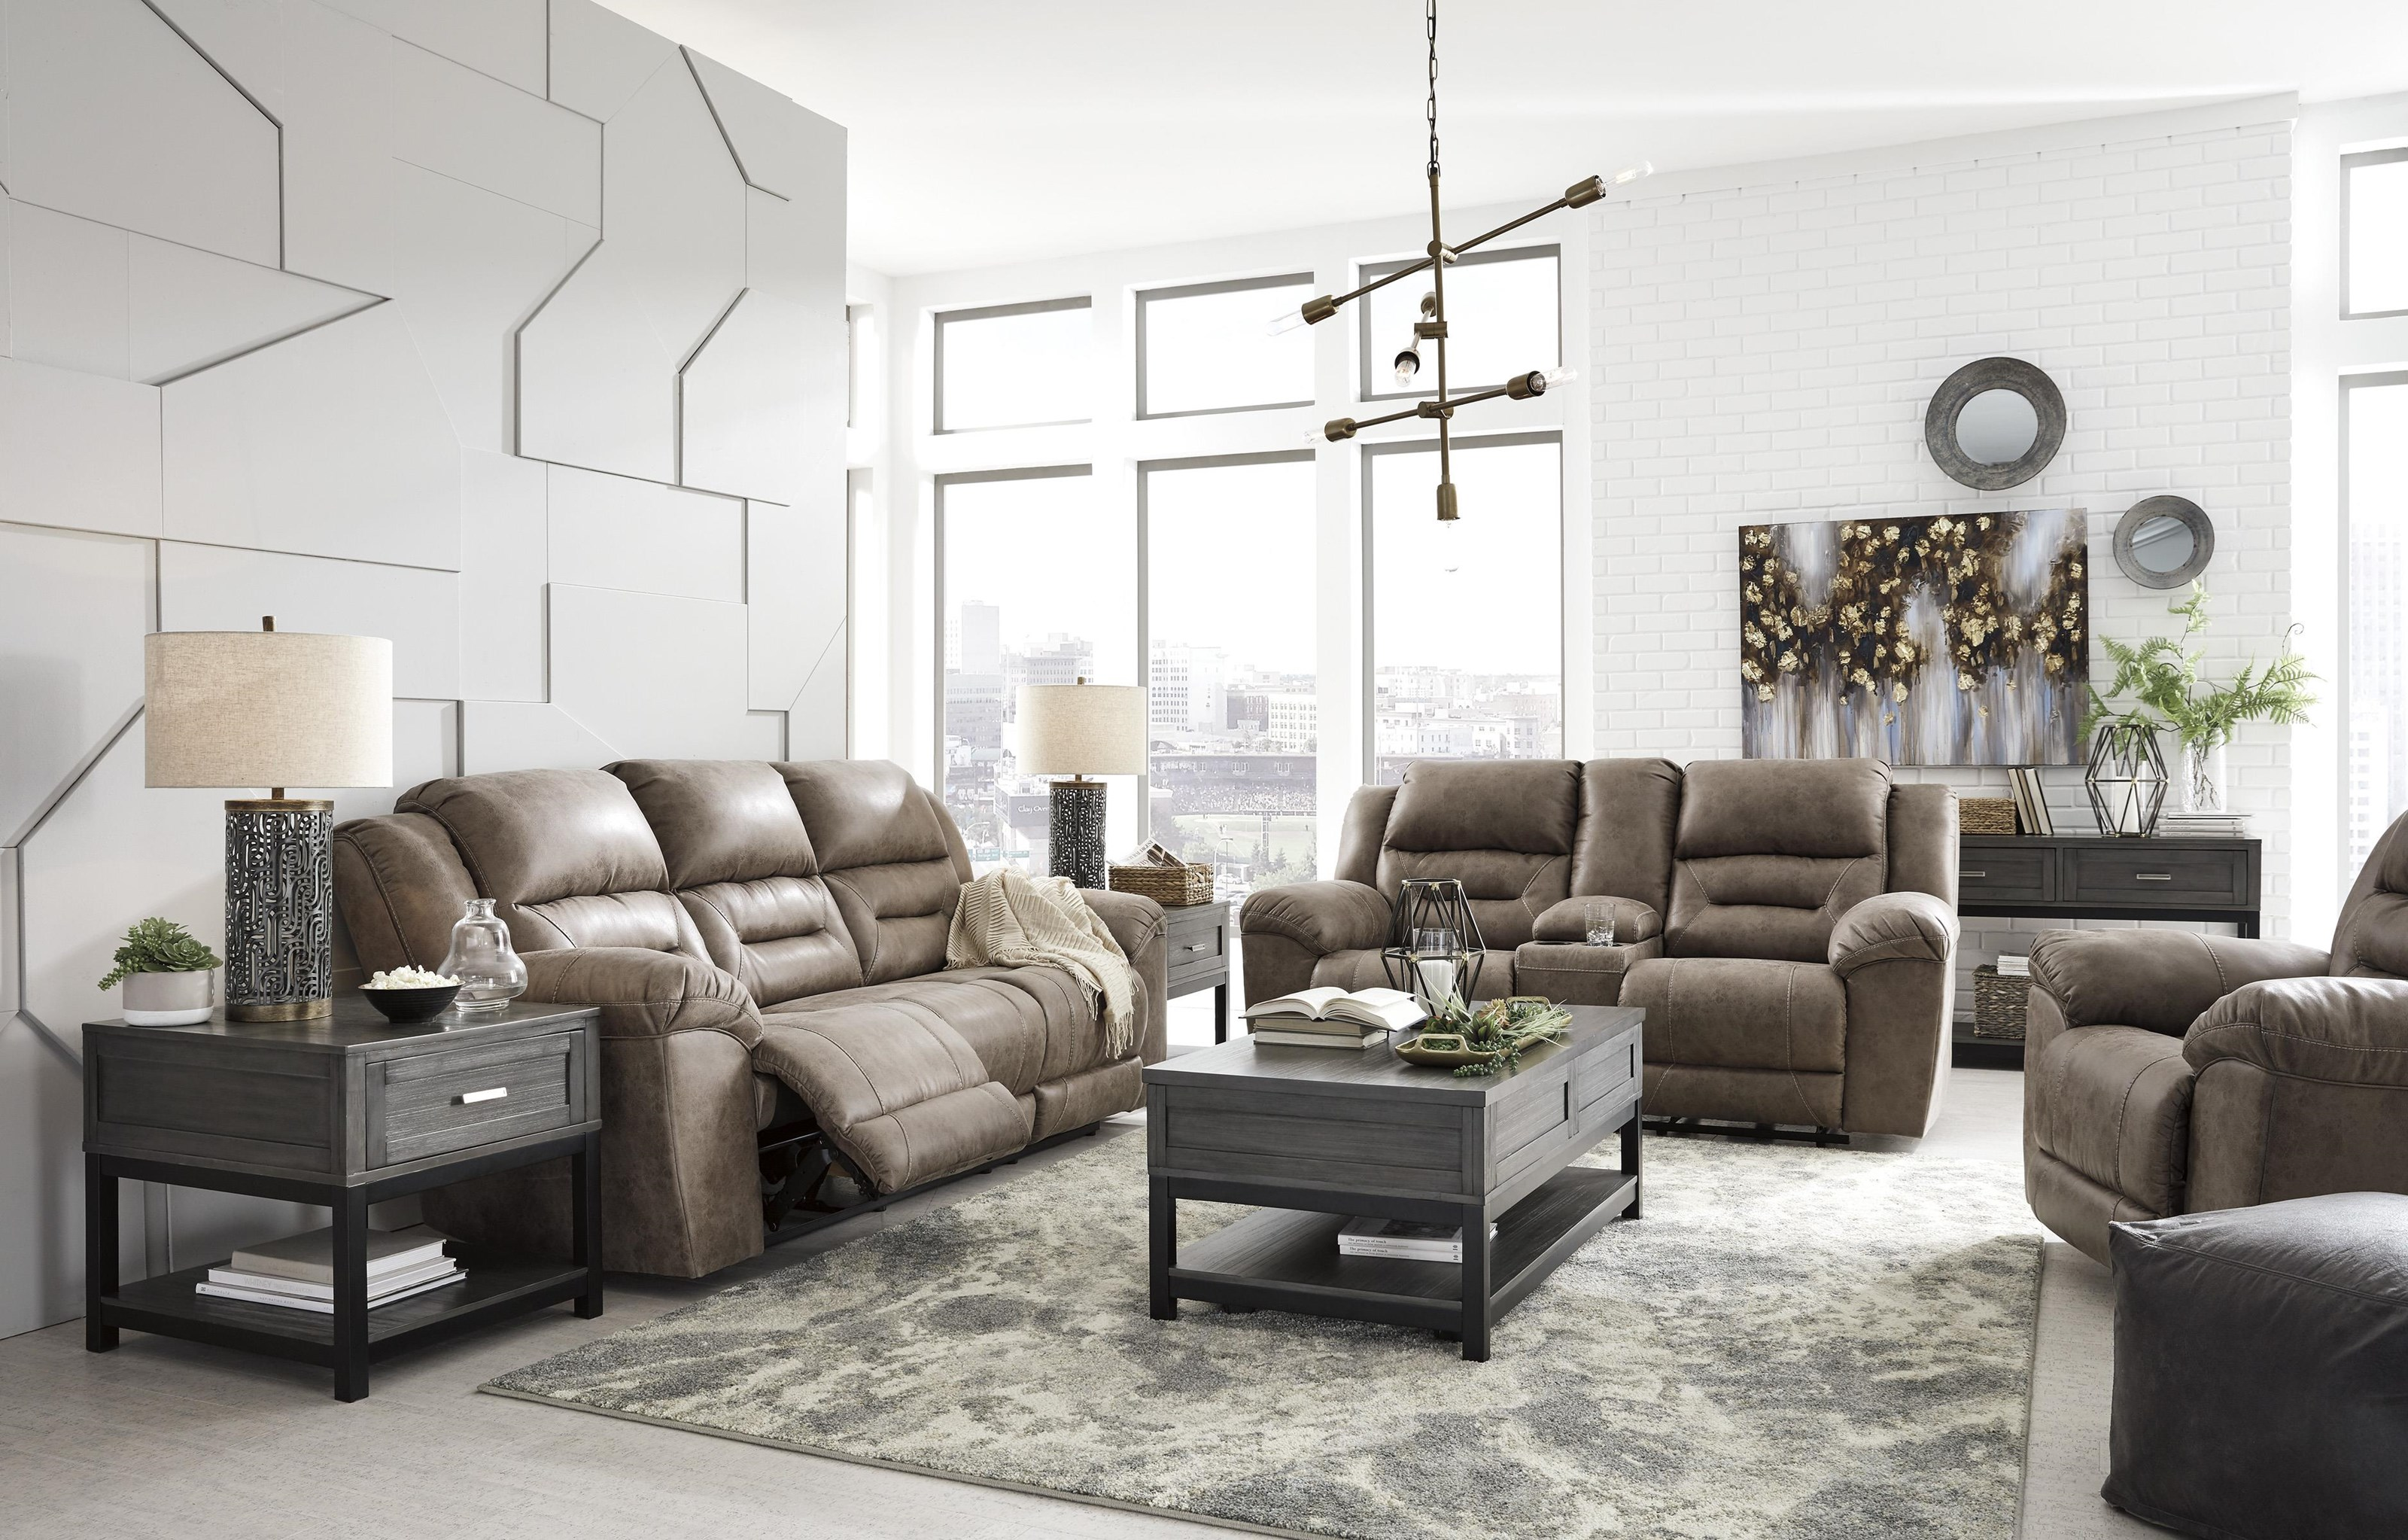 Stoneland Recliner Sofa and Recliner Set by Signature Design by Ashley at Sam Levitz Outlet